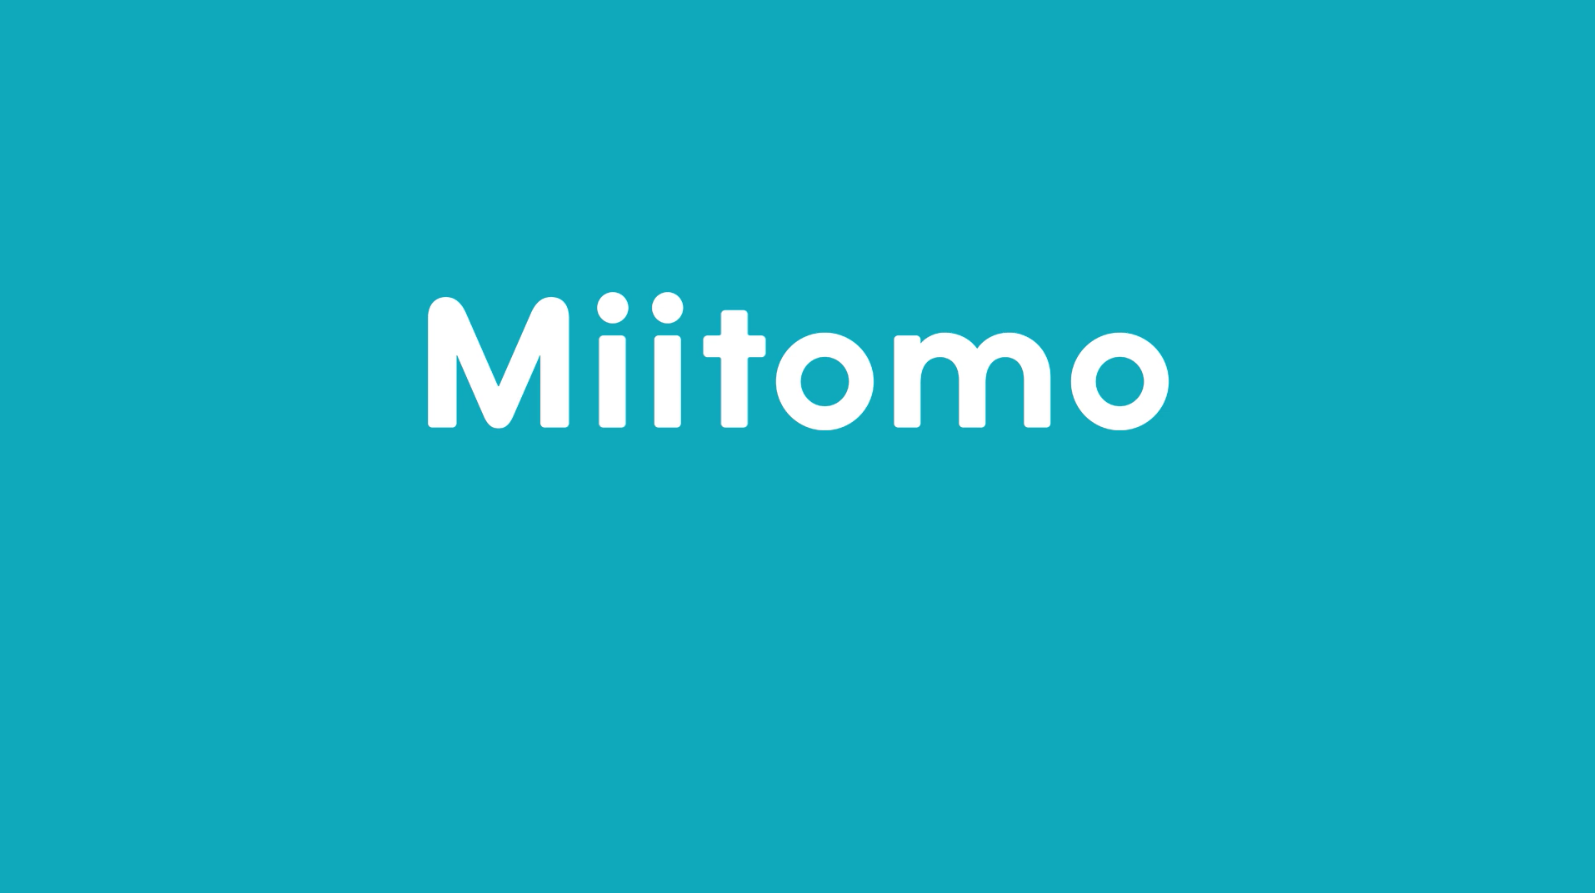 Miitomo Launch Trailer Released